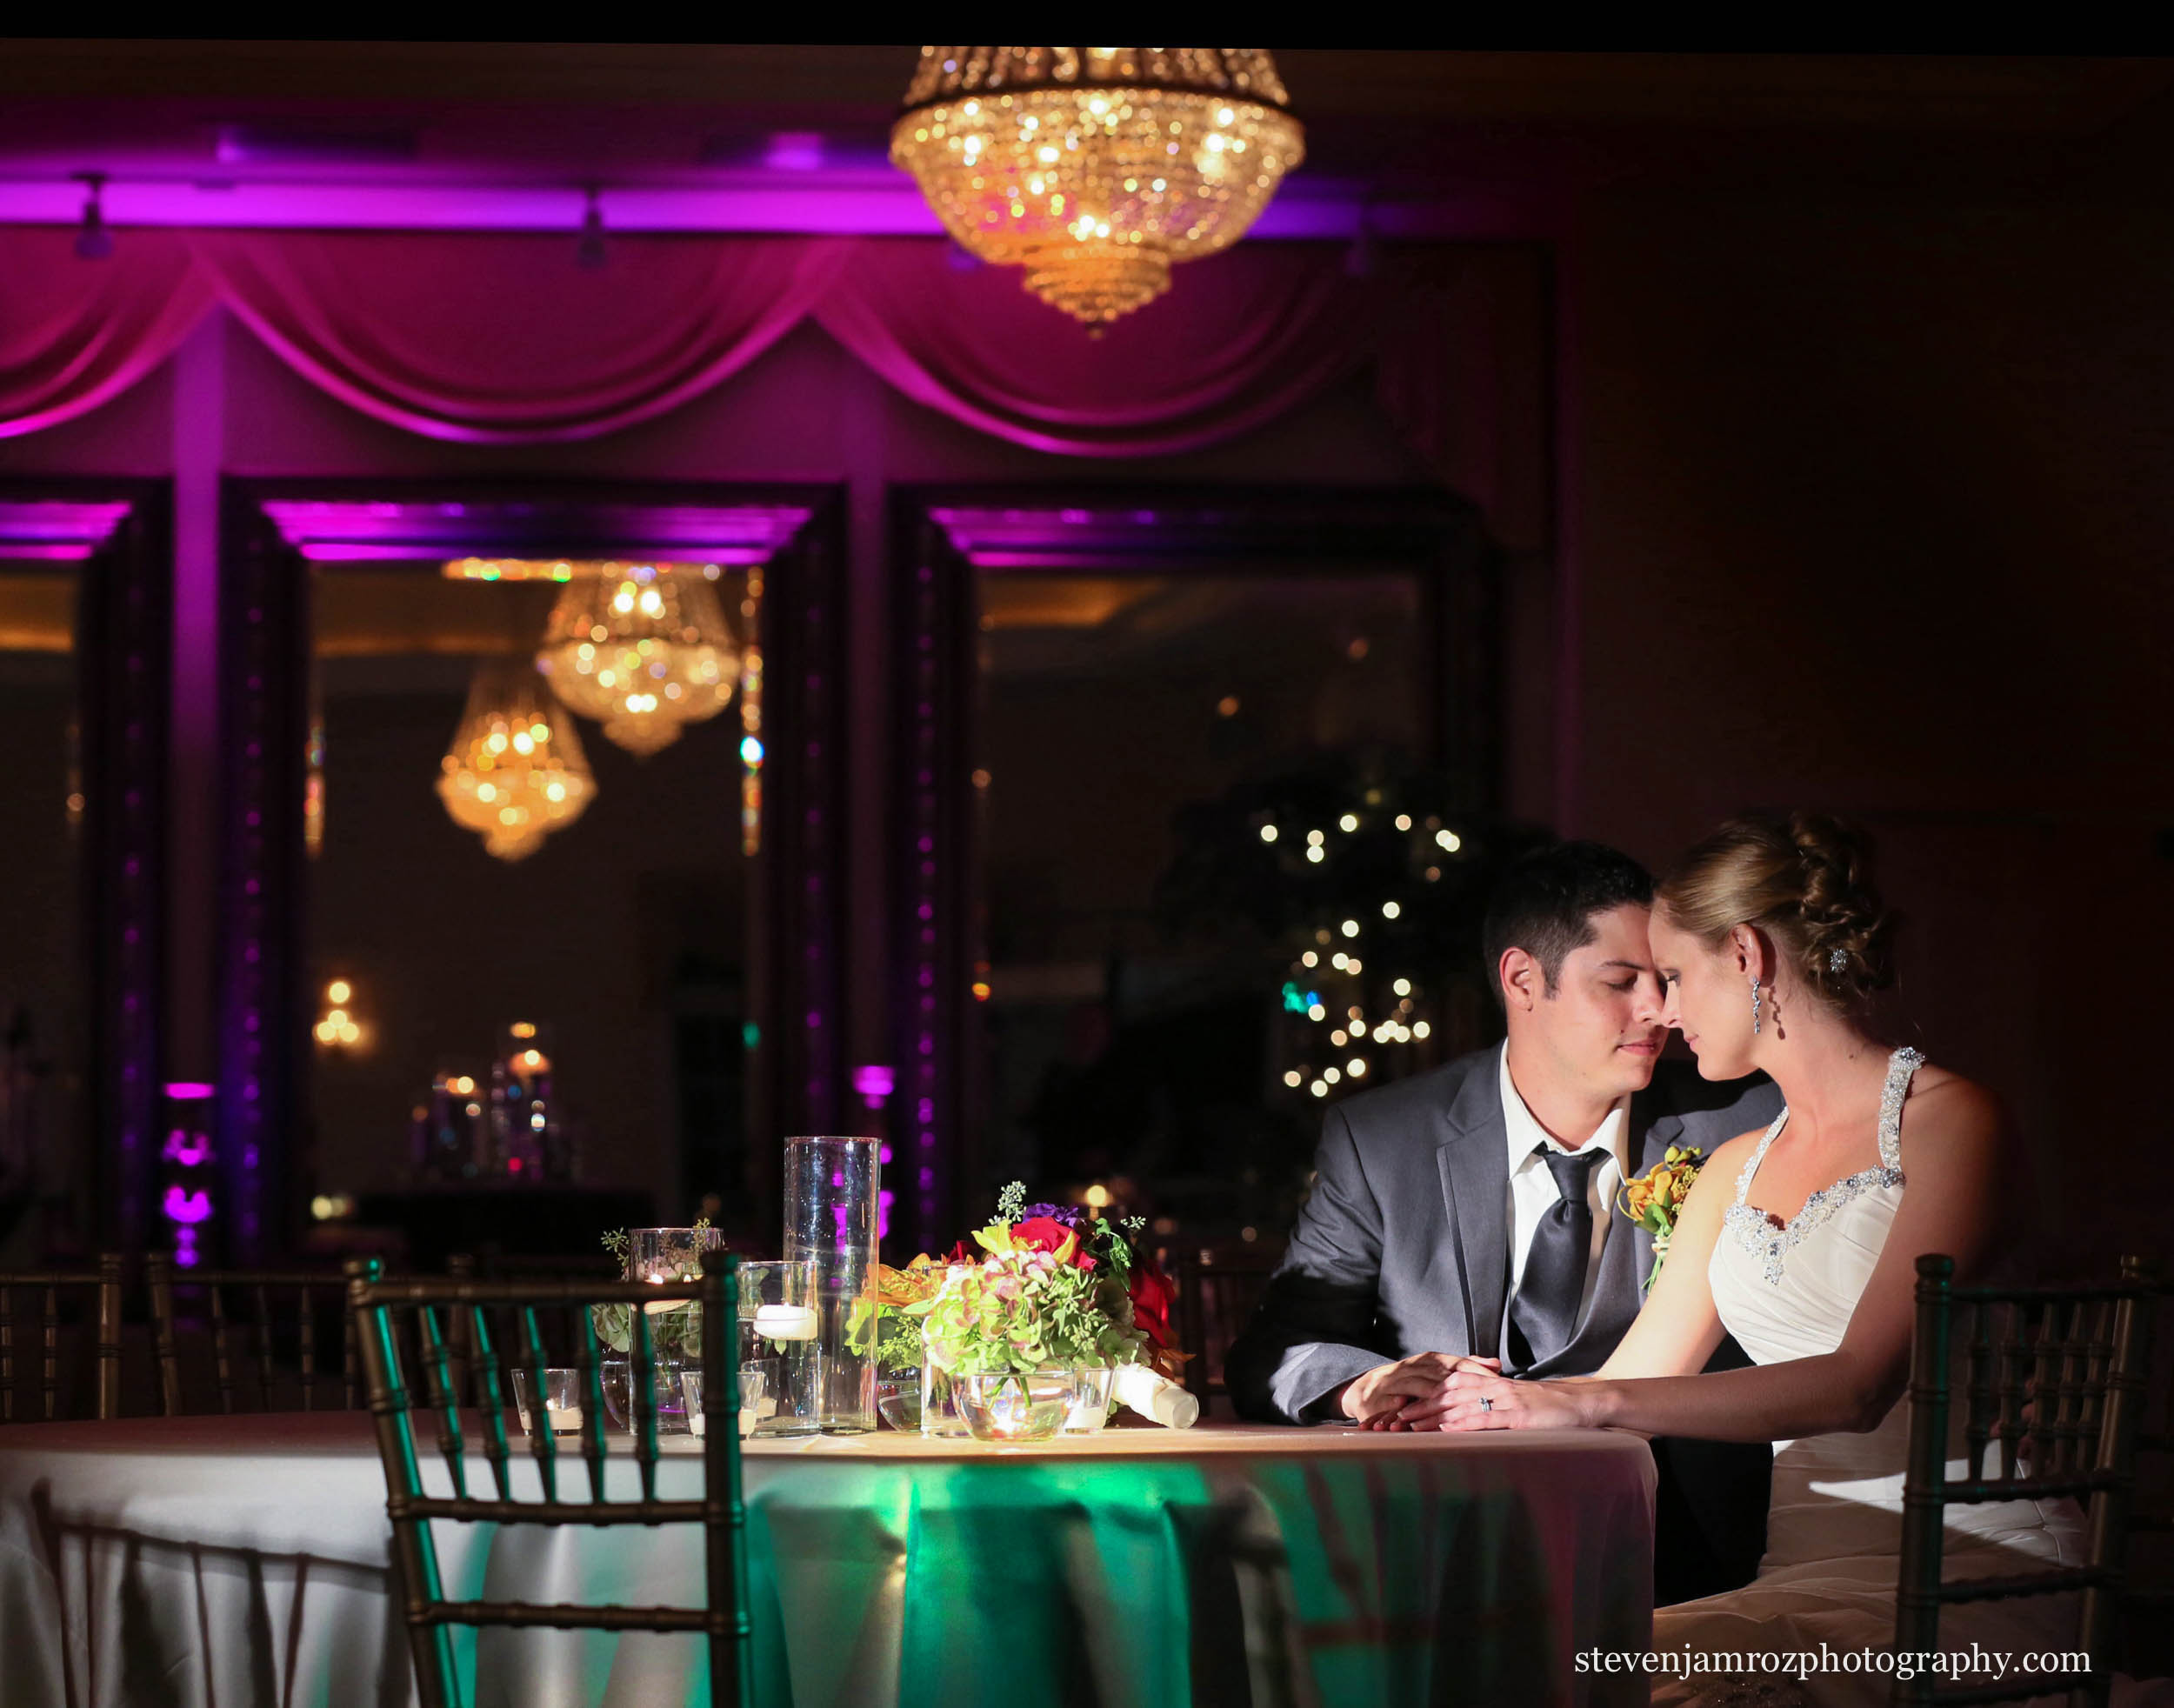 creative-lighting-wedding-hudson-manor-steven-jamroz-photography-0121.jpg